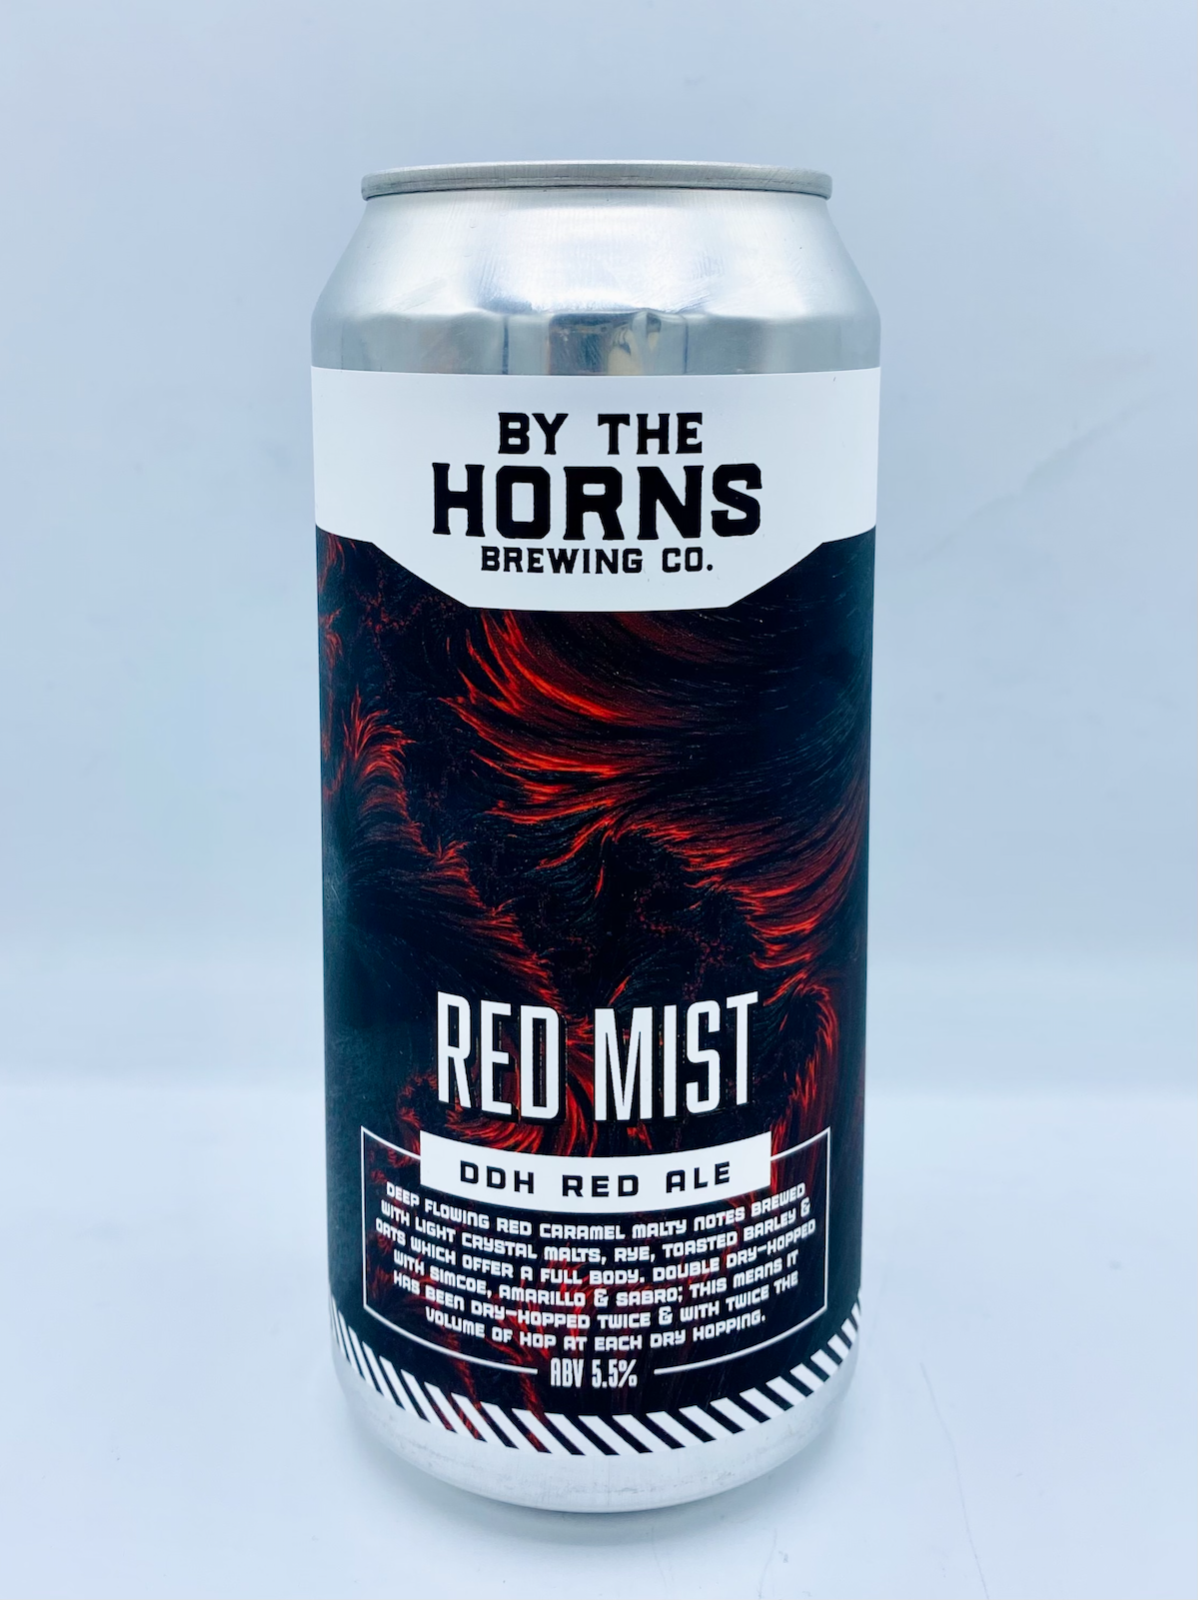 By The Horns Brewing Co - Red Mist 5.5%